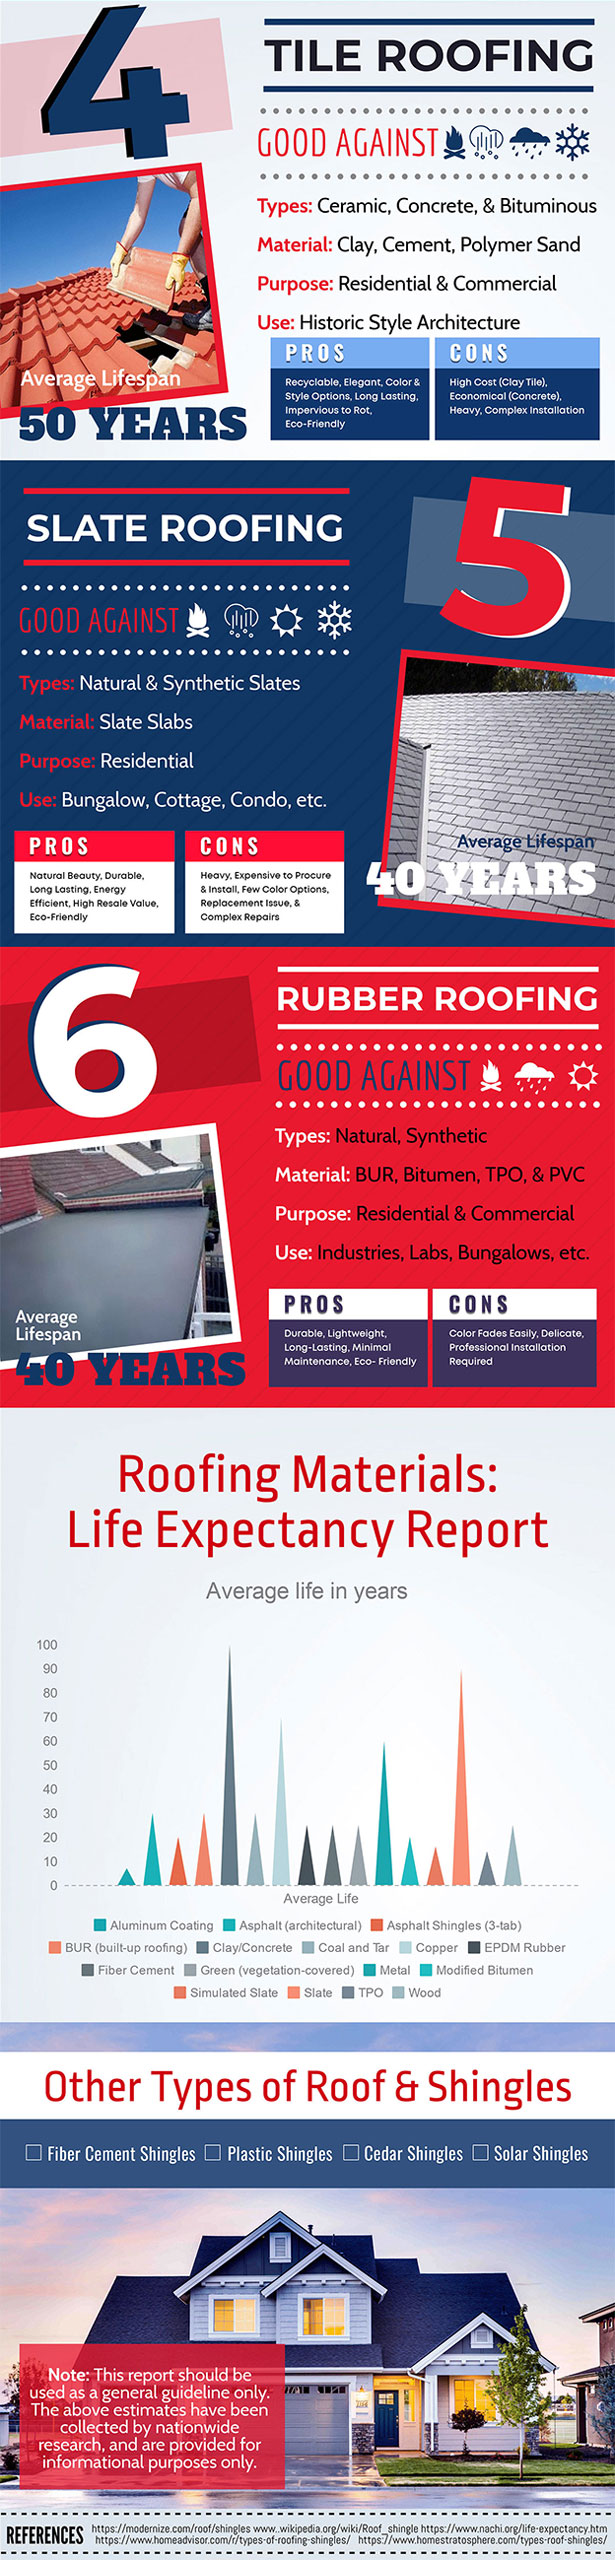 Roof types and average life span 2